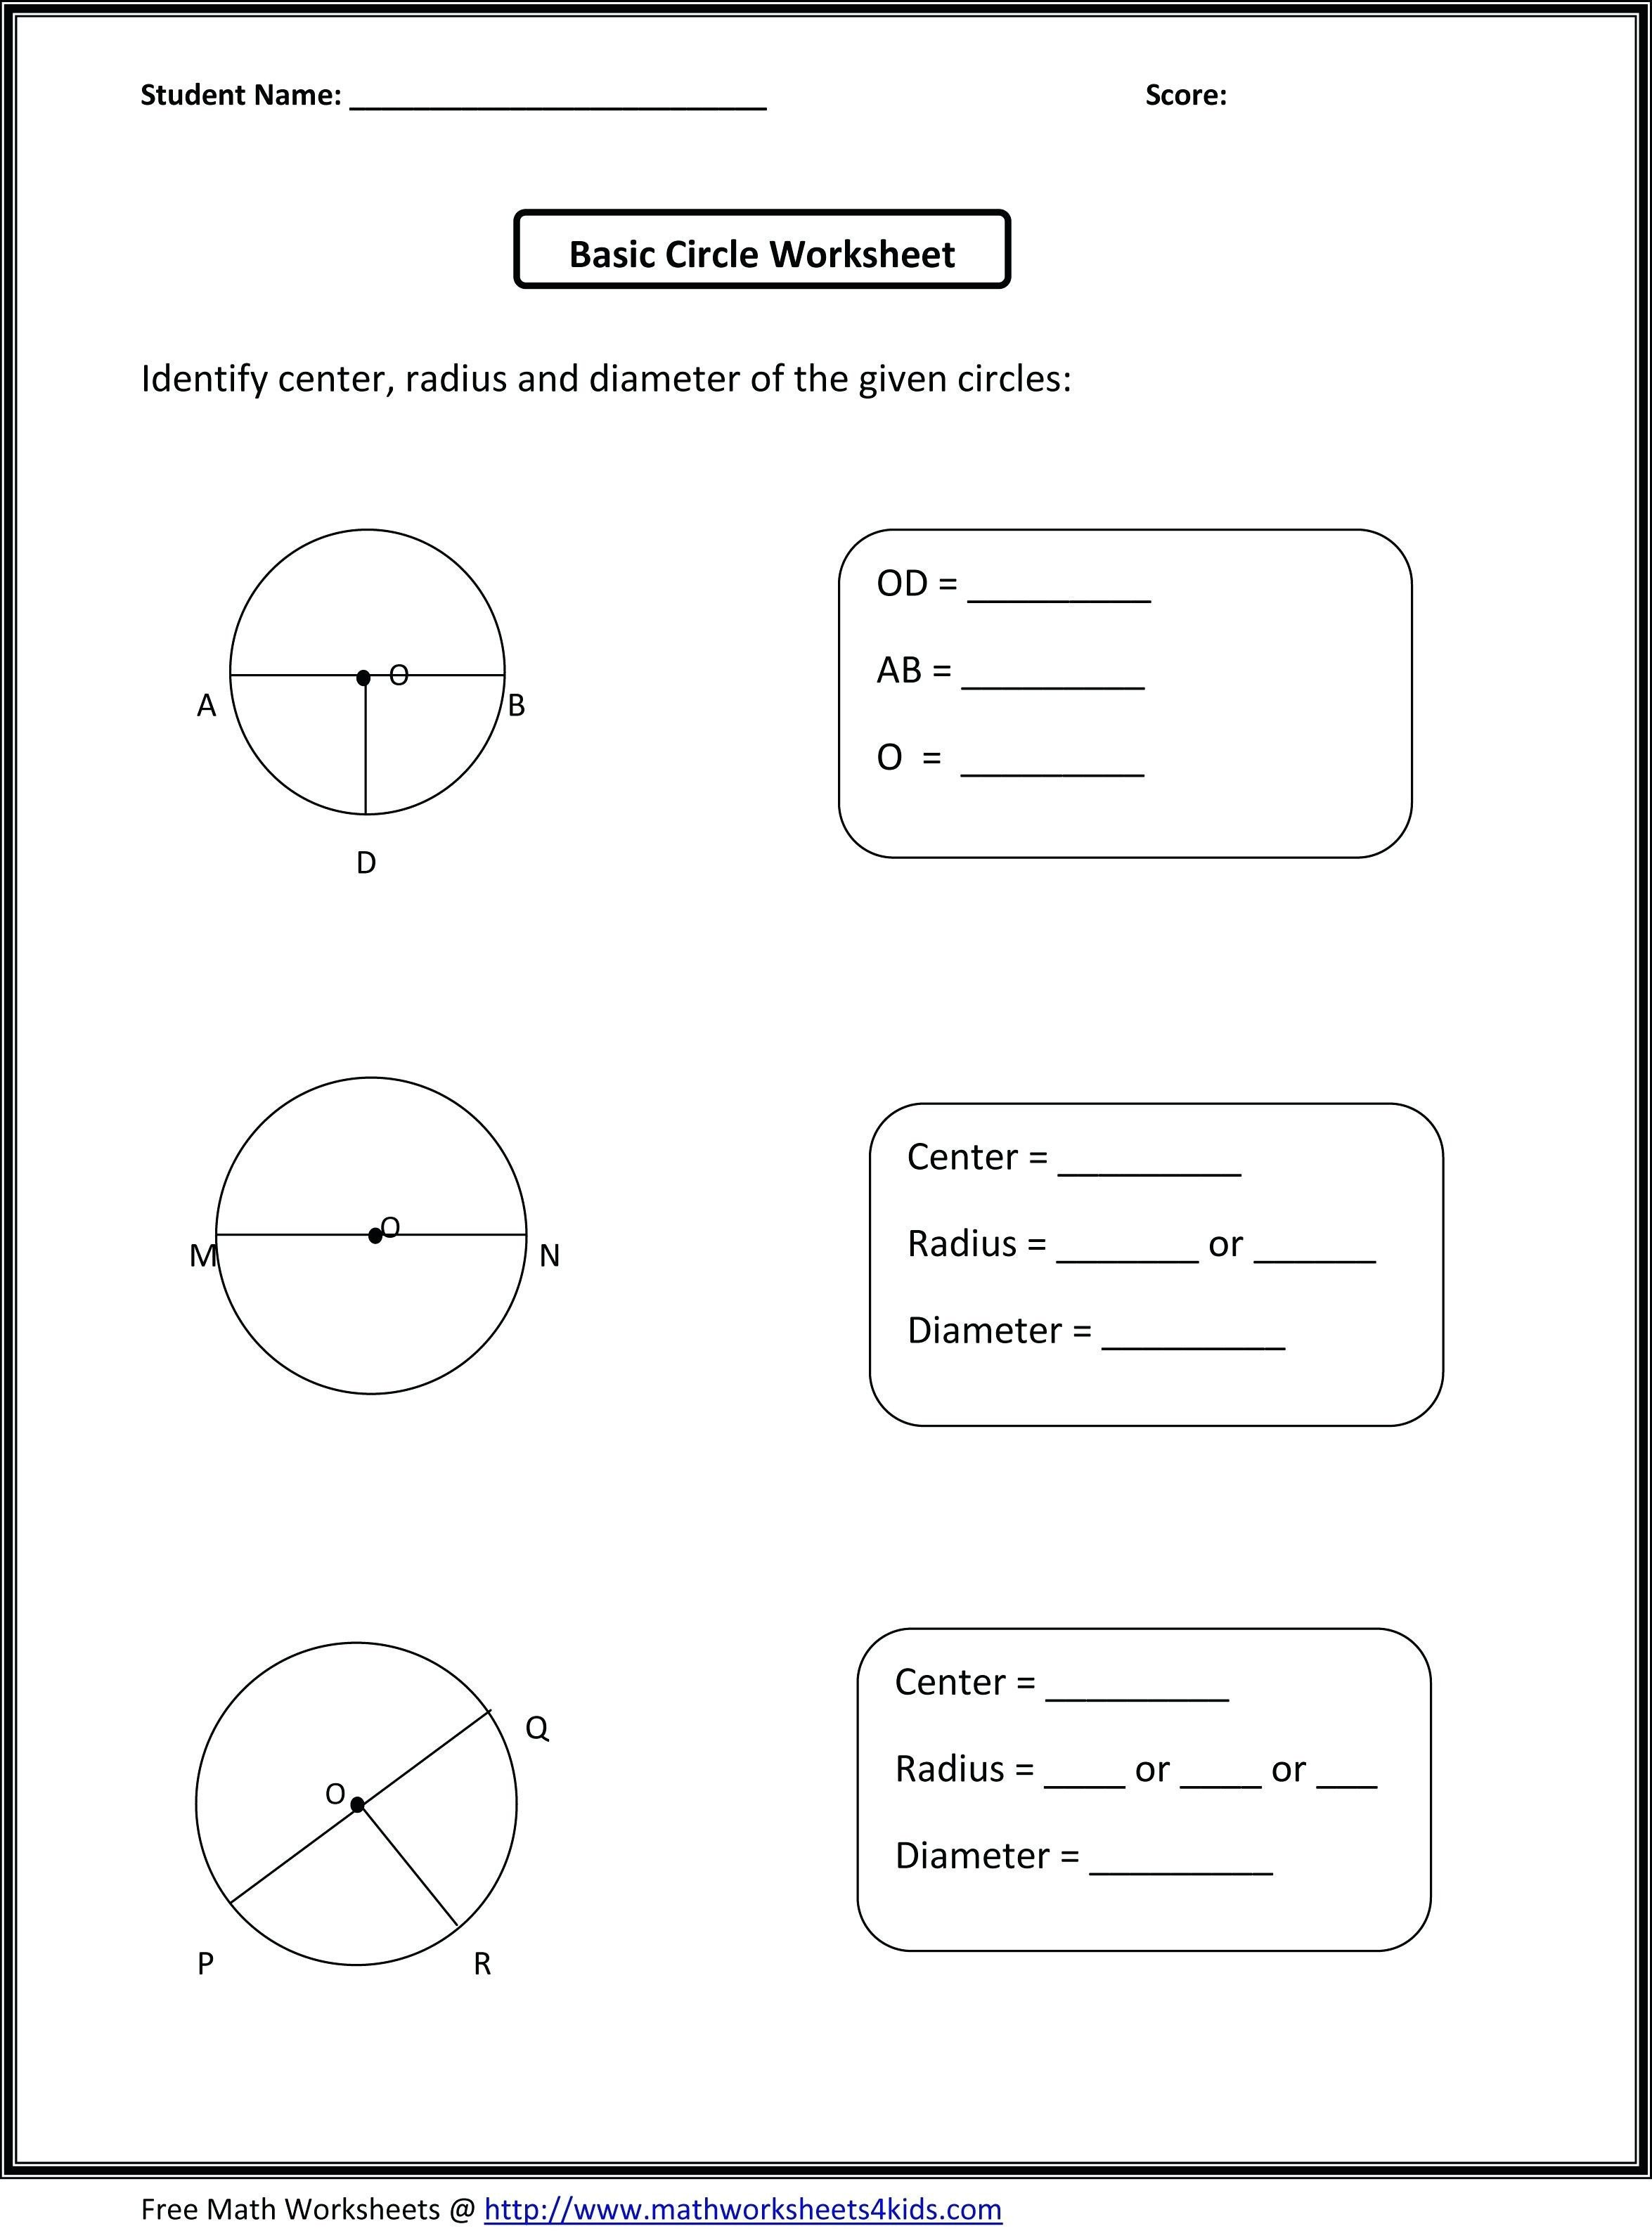 Diffusion And Osmosis Worksheet Answer Key Awesome 15 Awesome